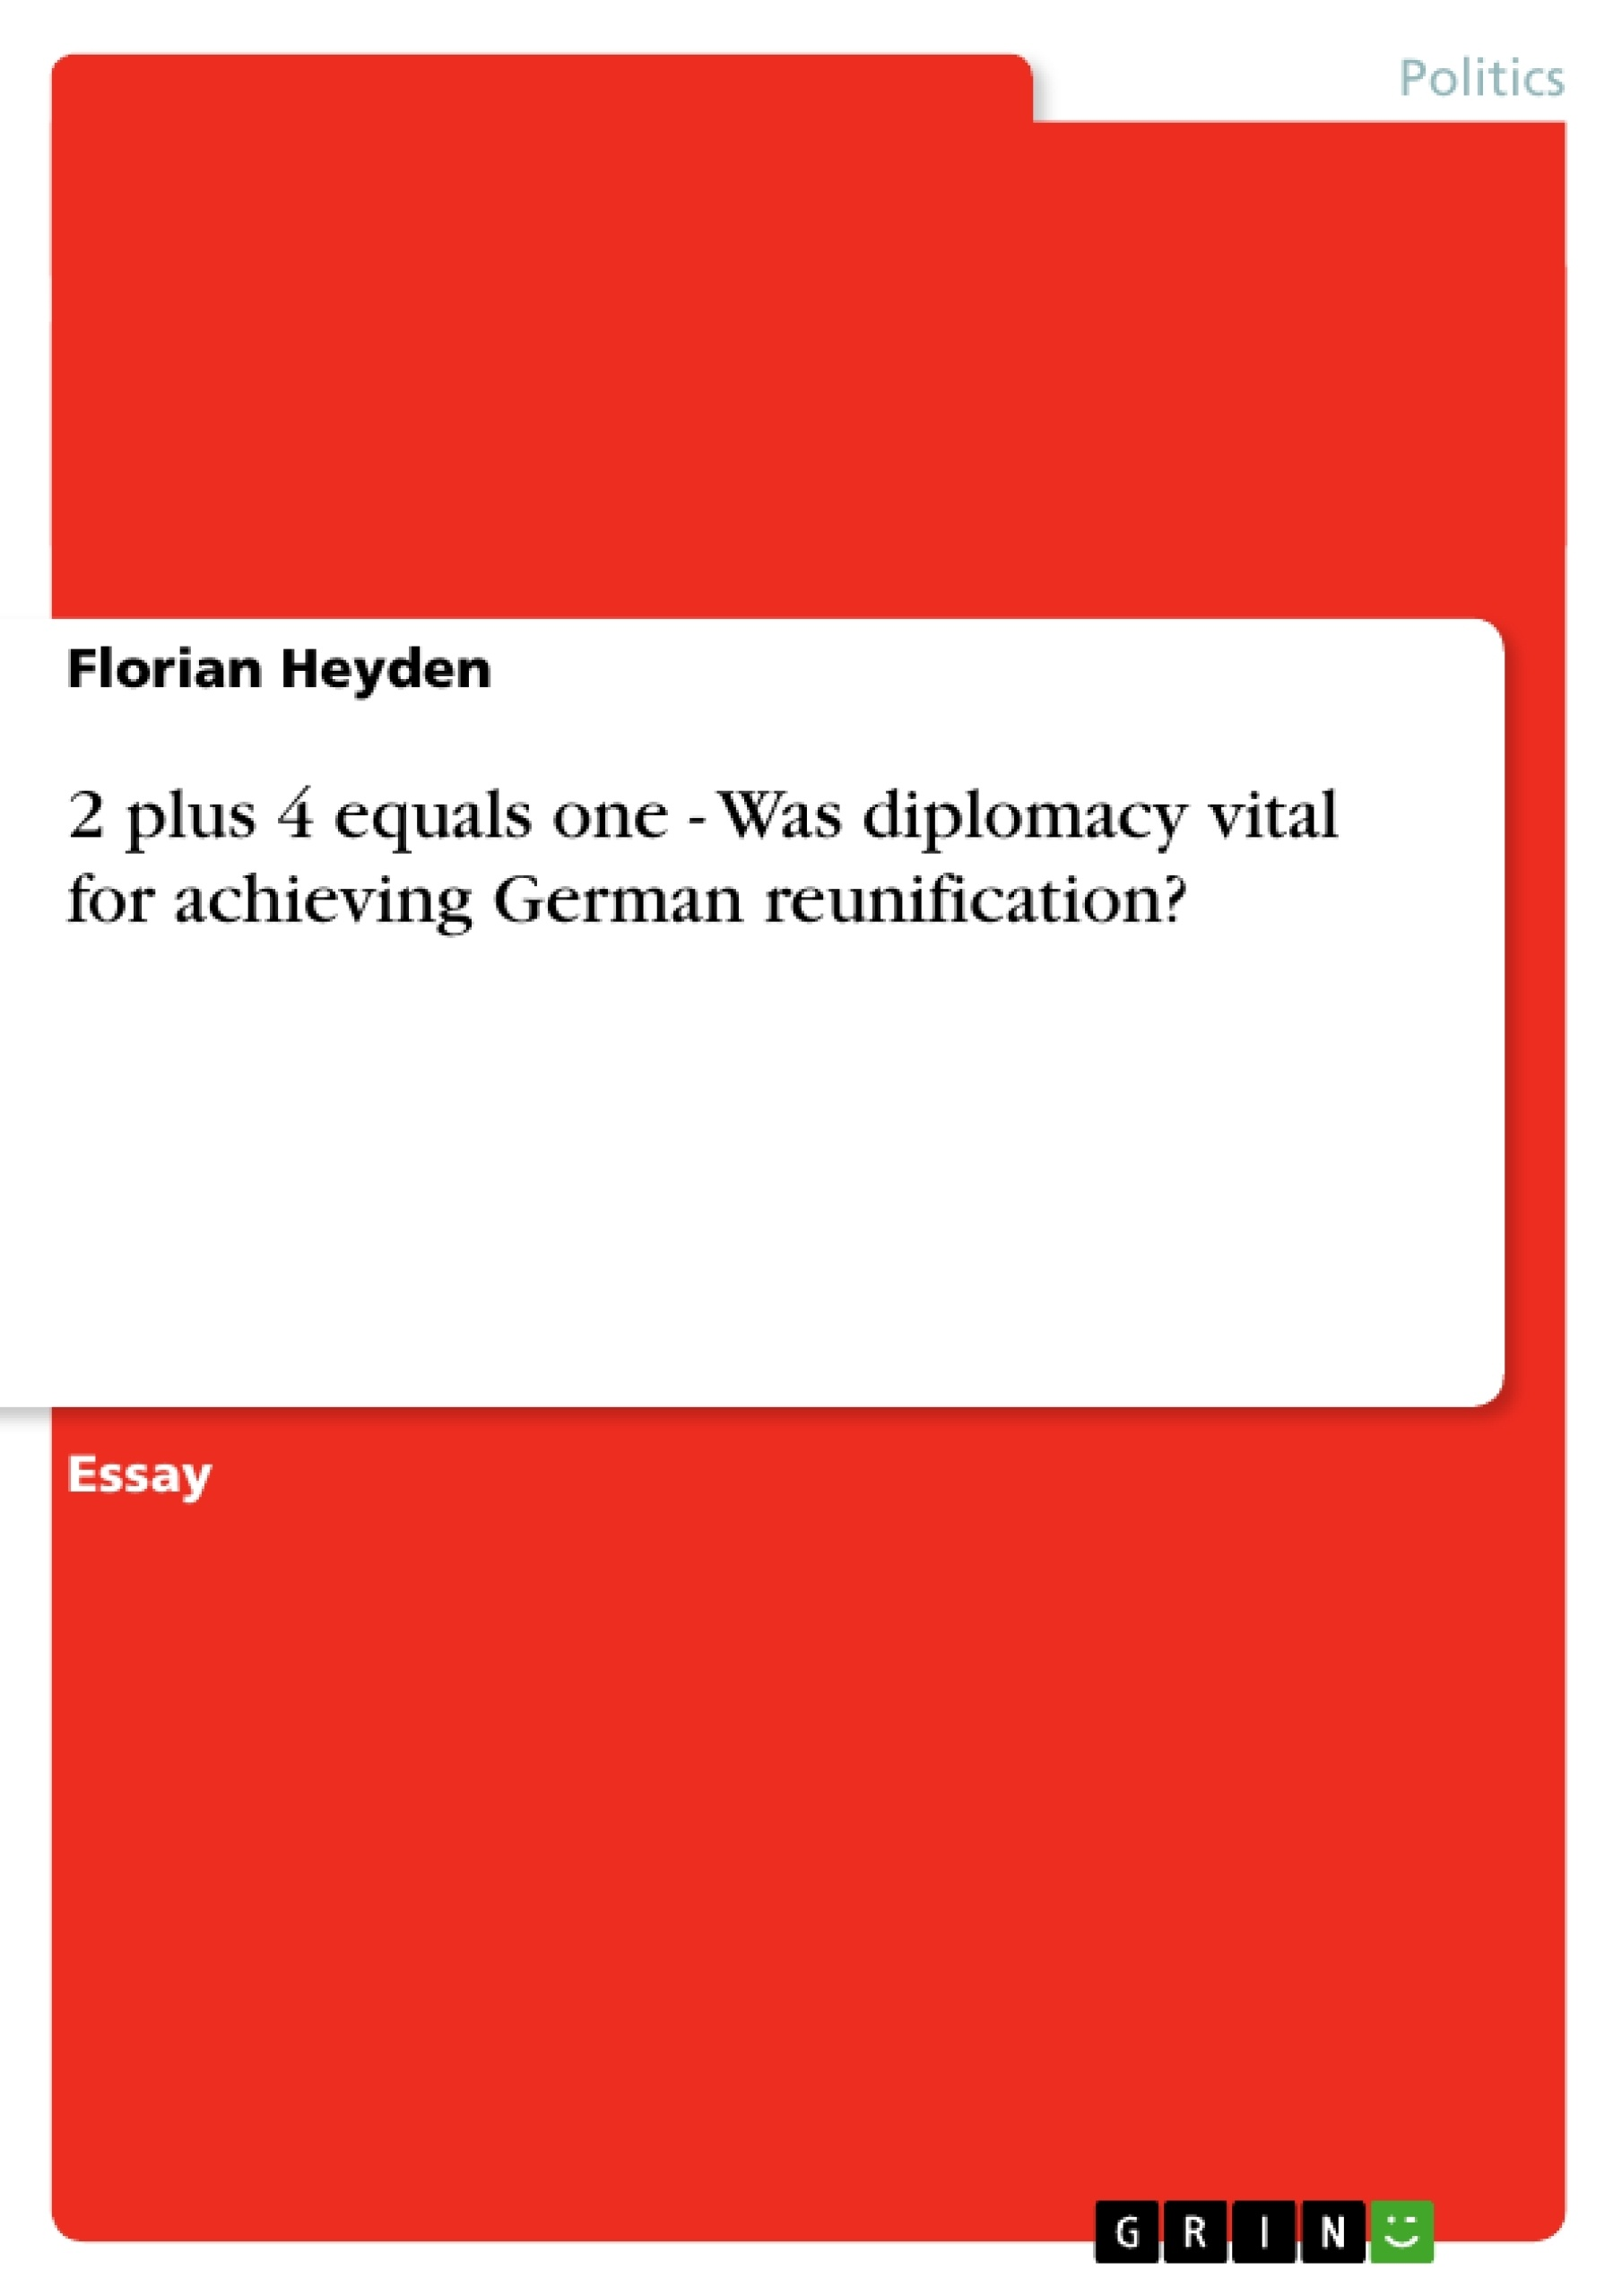 Title: 2 plus 4 equals one - Was diplomacy vital for achieving German reunification?